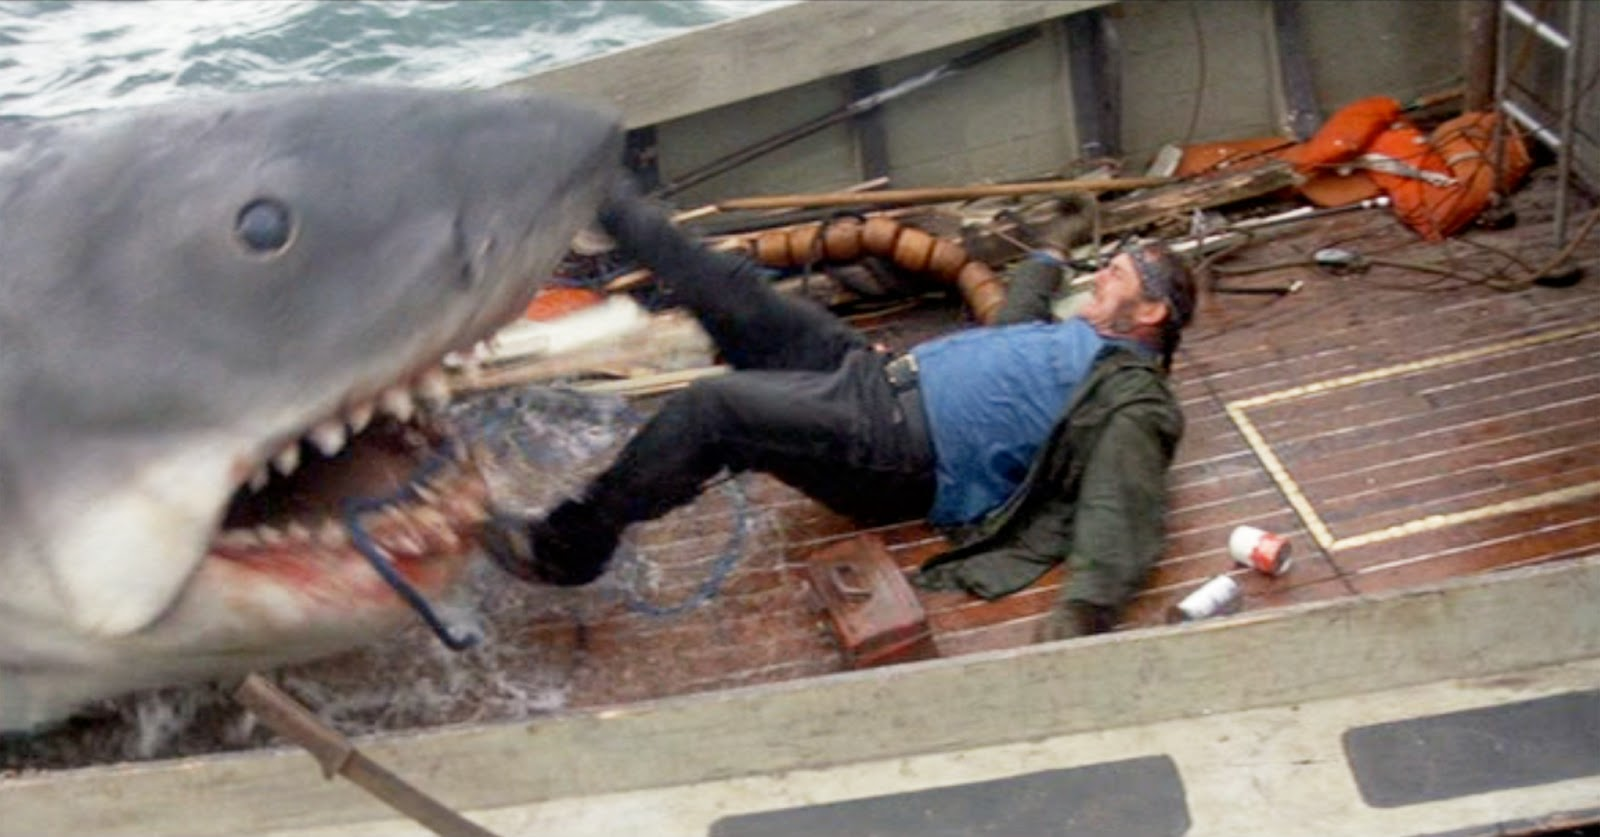 Terror in the movie jaws